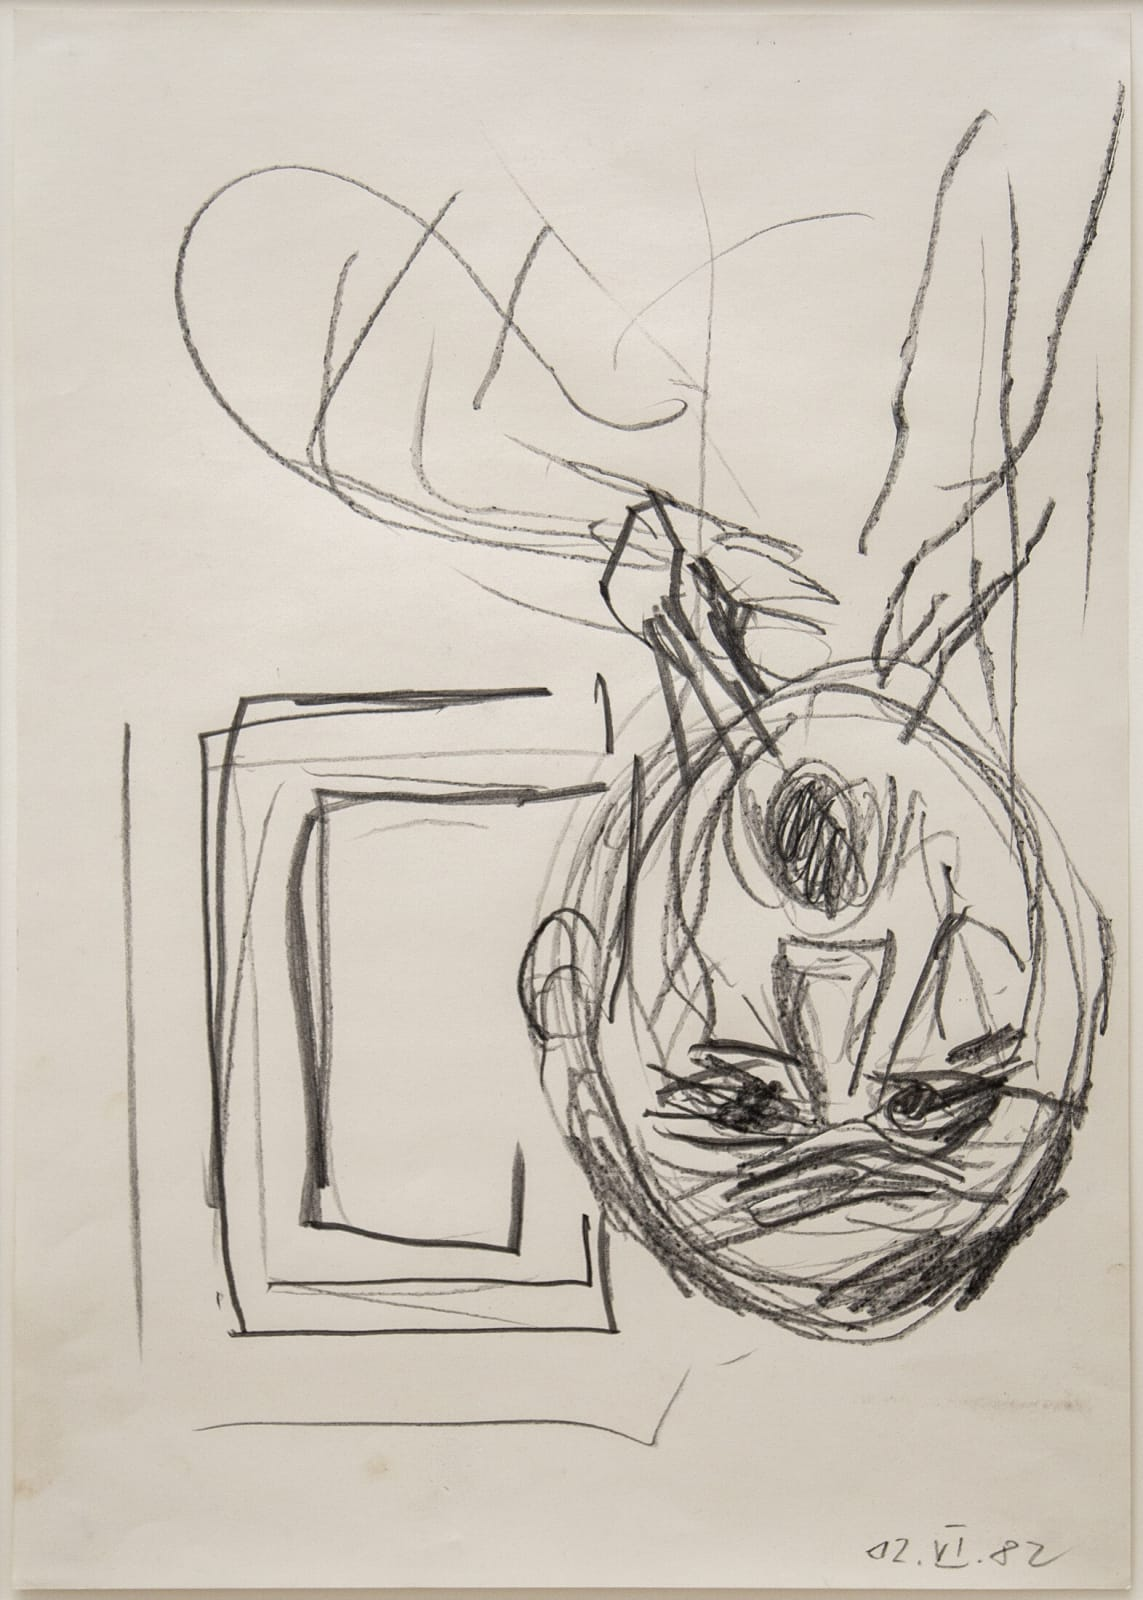 Georg Baselitz Untitled (View Out of the Window) 1982 pencil on paper 24 x 17 inches 61 x 43.2 cm More Info